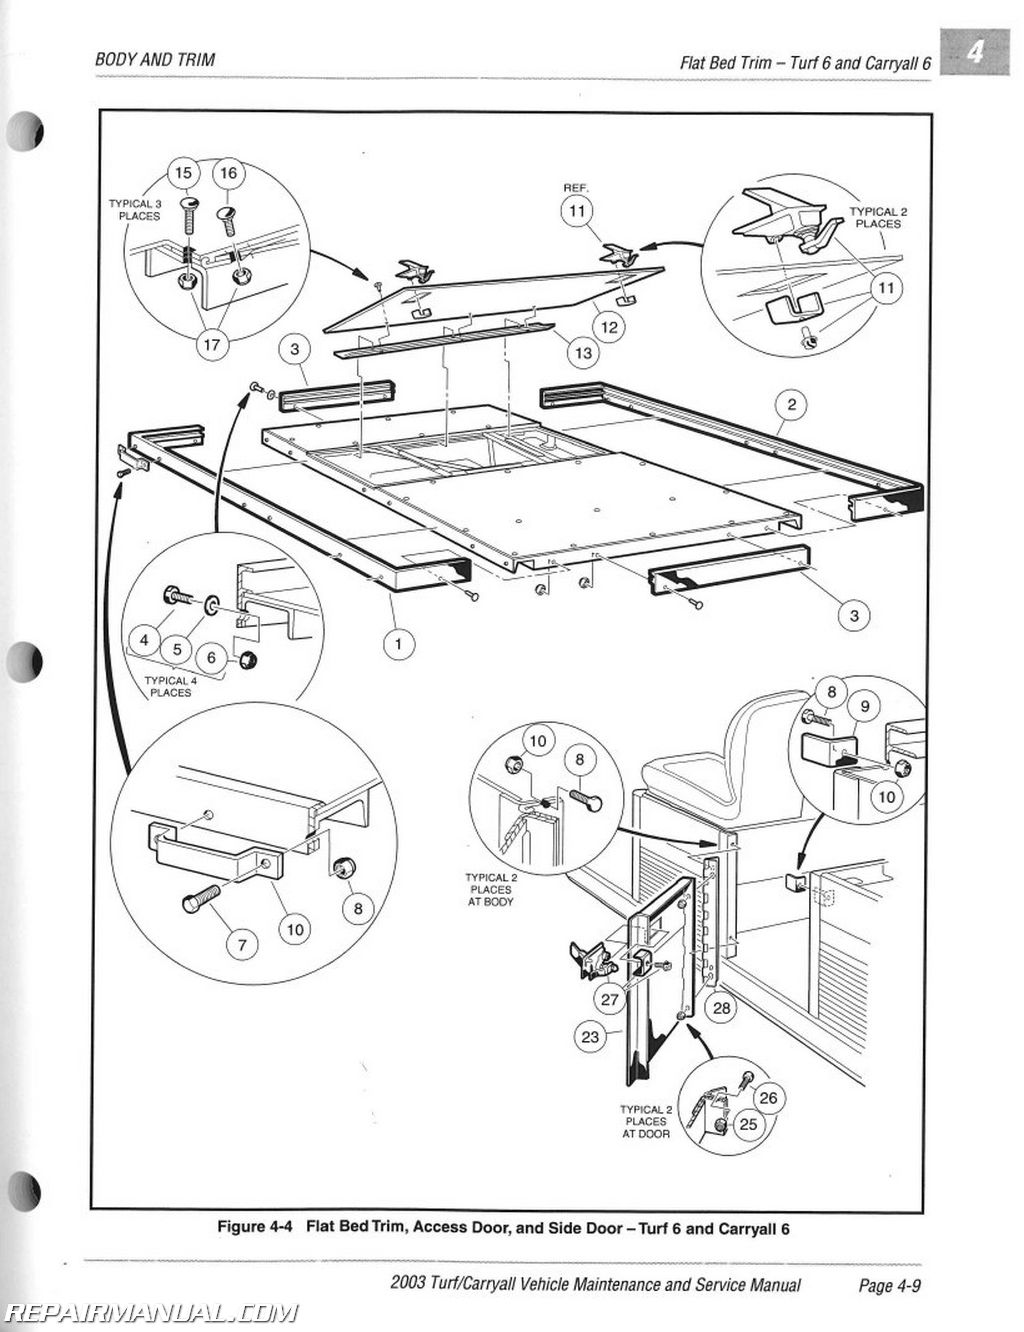 Club Car Turf 2 Carryall Wiring Diagram Electrical Diagrams 1991 Electric Schematic Rev Limiter